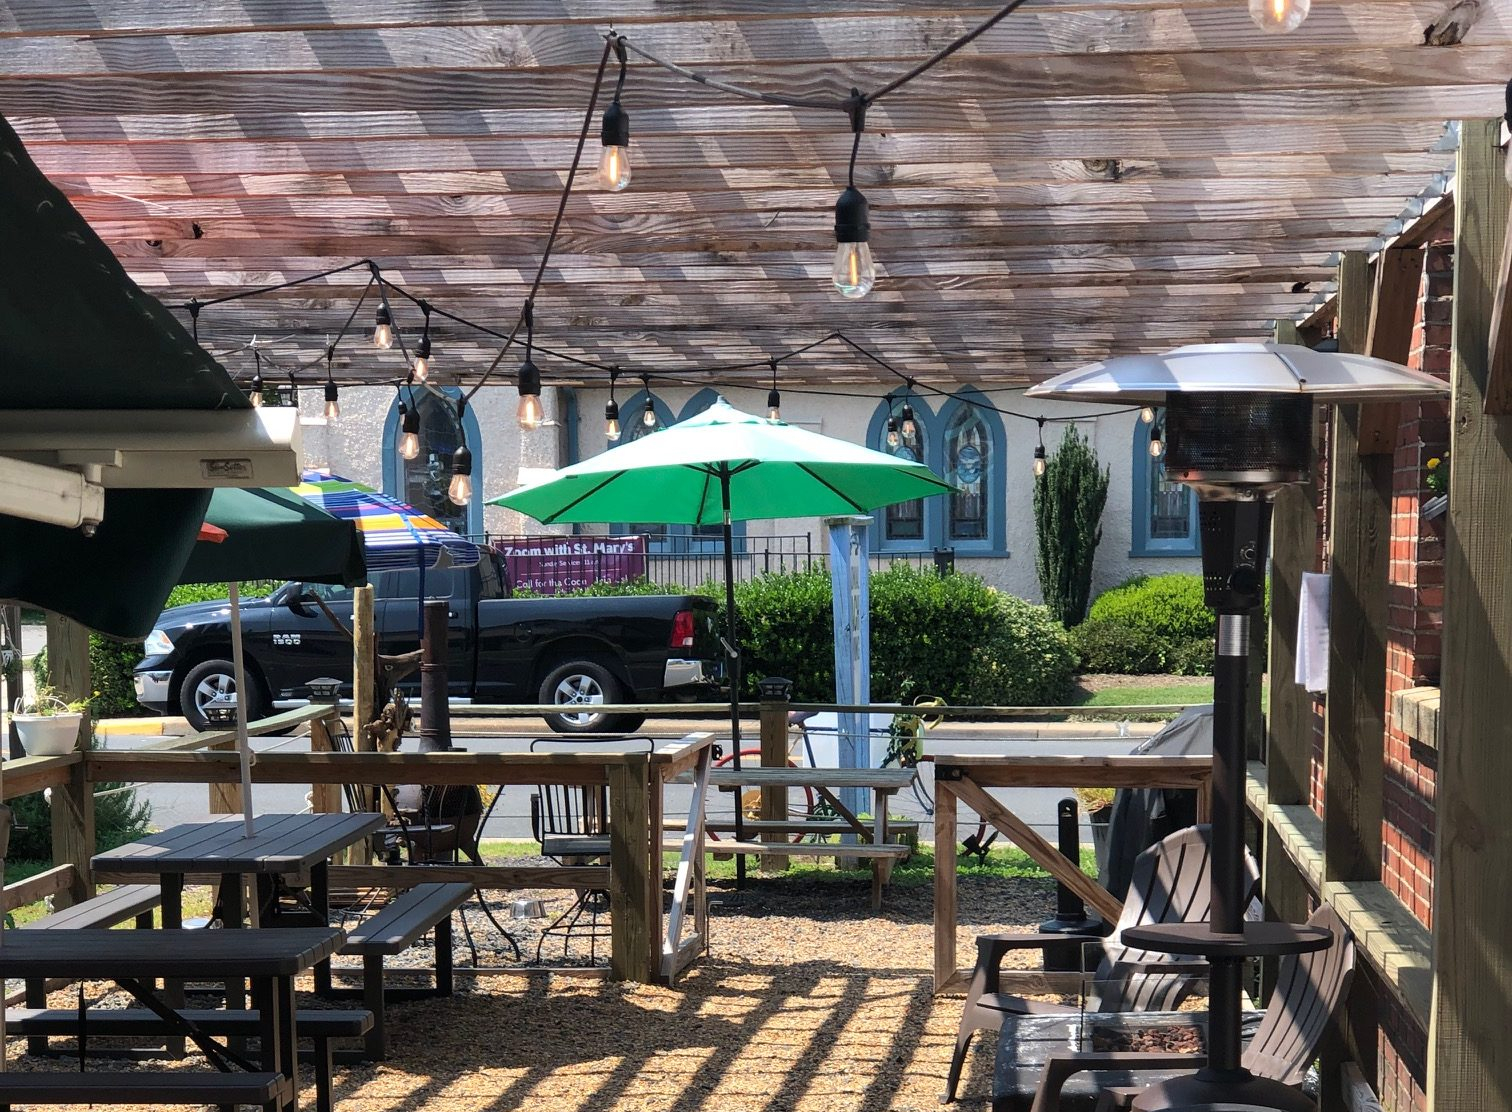 colonial beach virginia beer garden